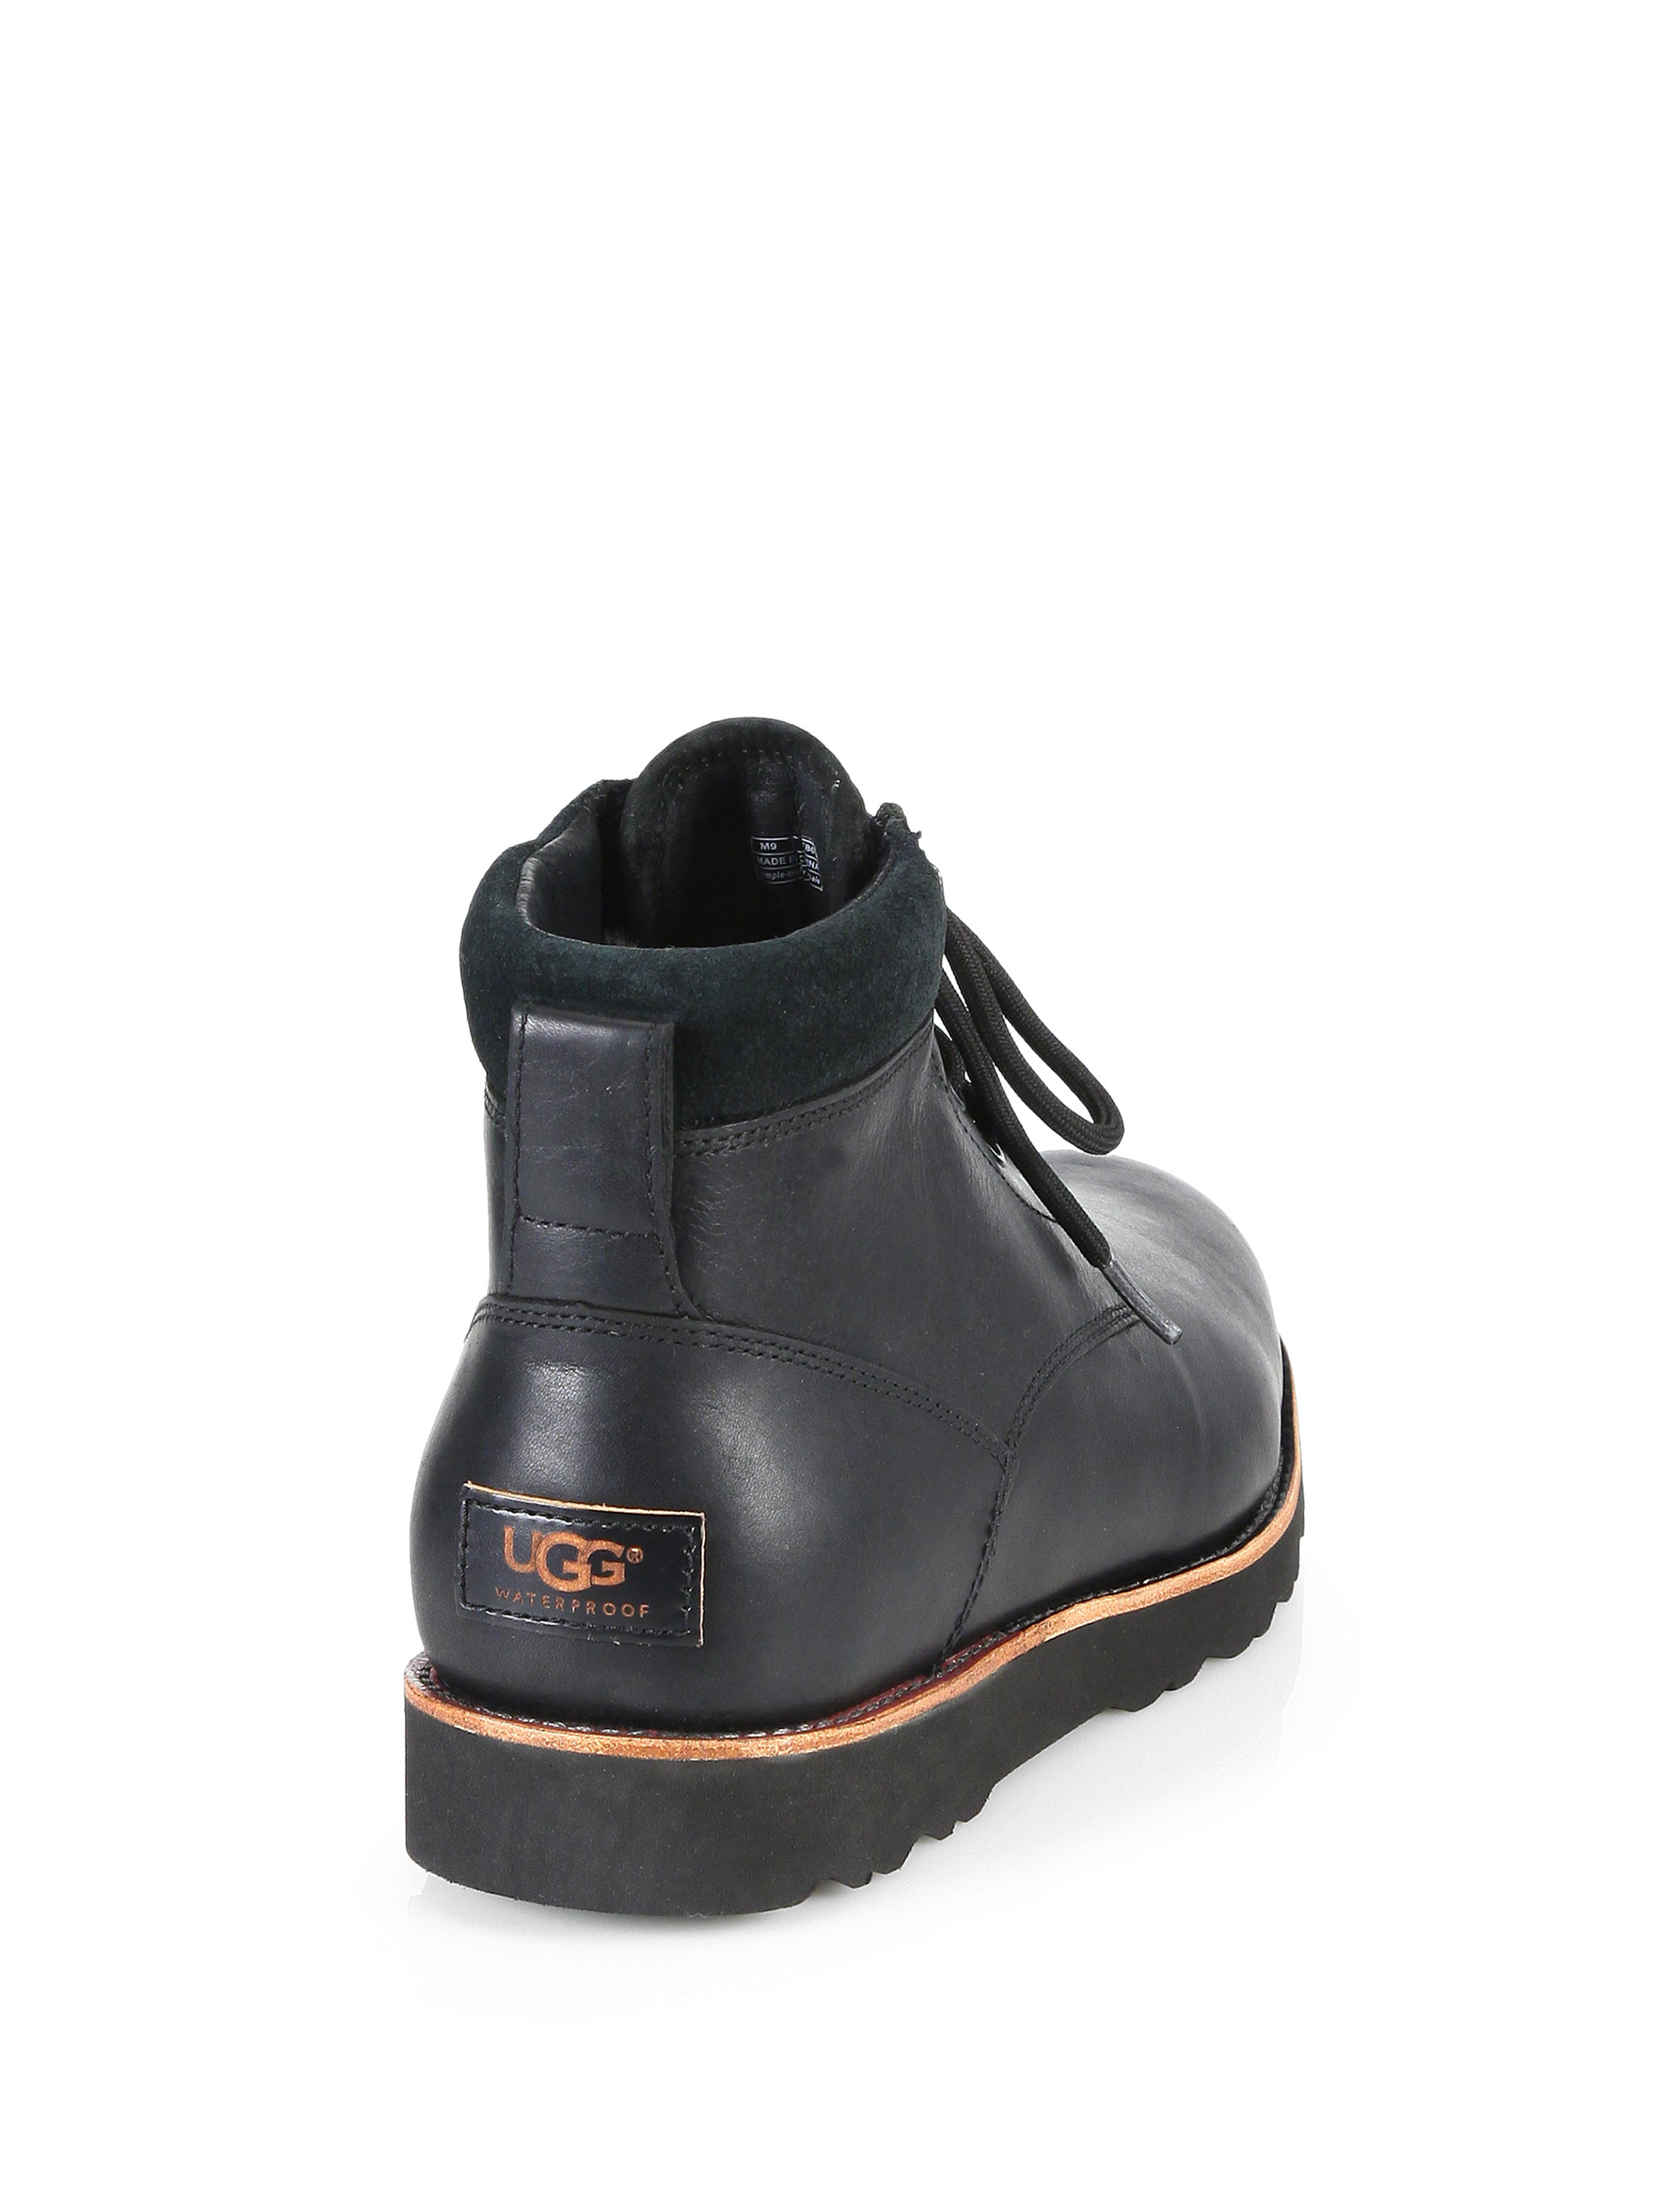 8a04ab64024 UGG Black Seton Leather Lace-Up Boots for men